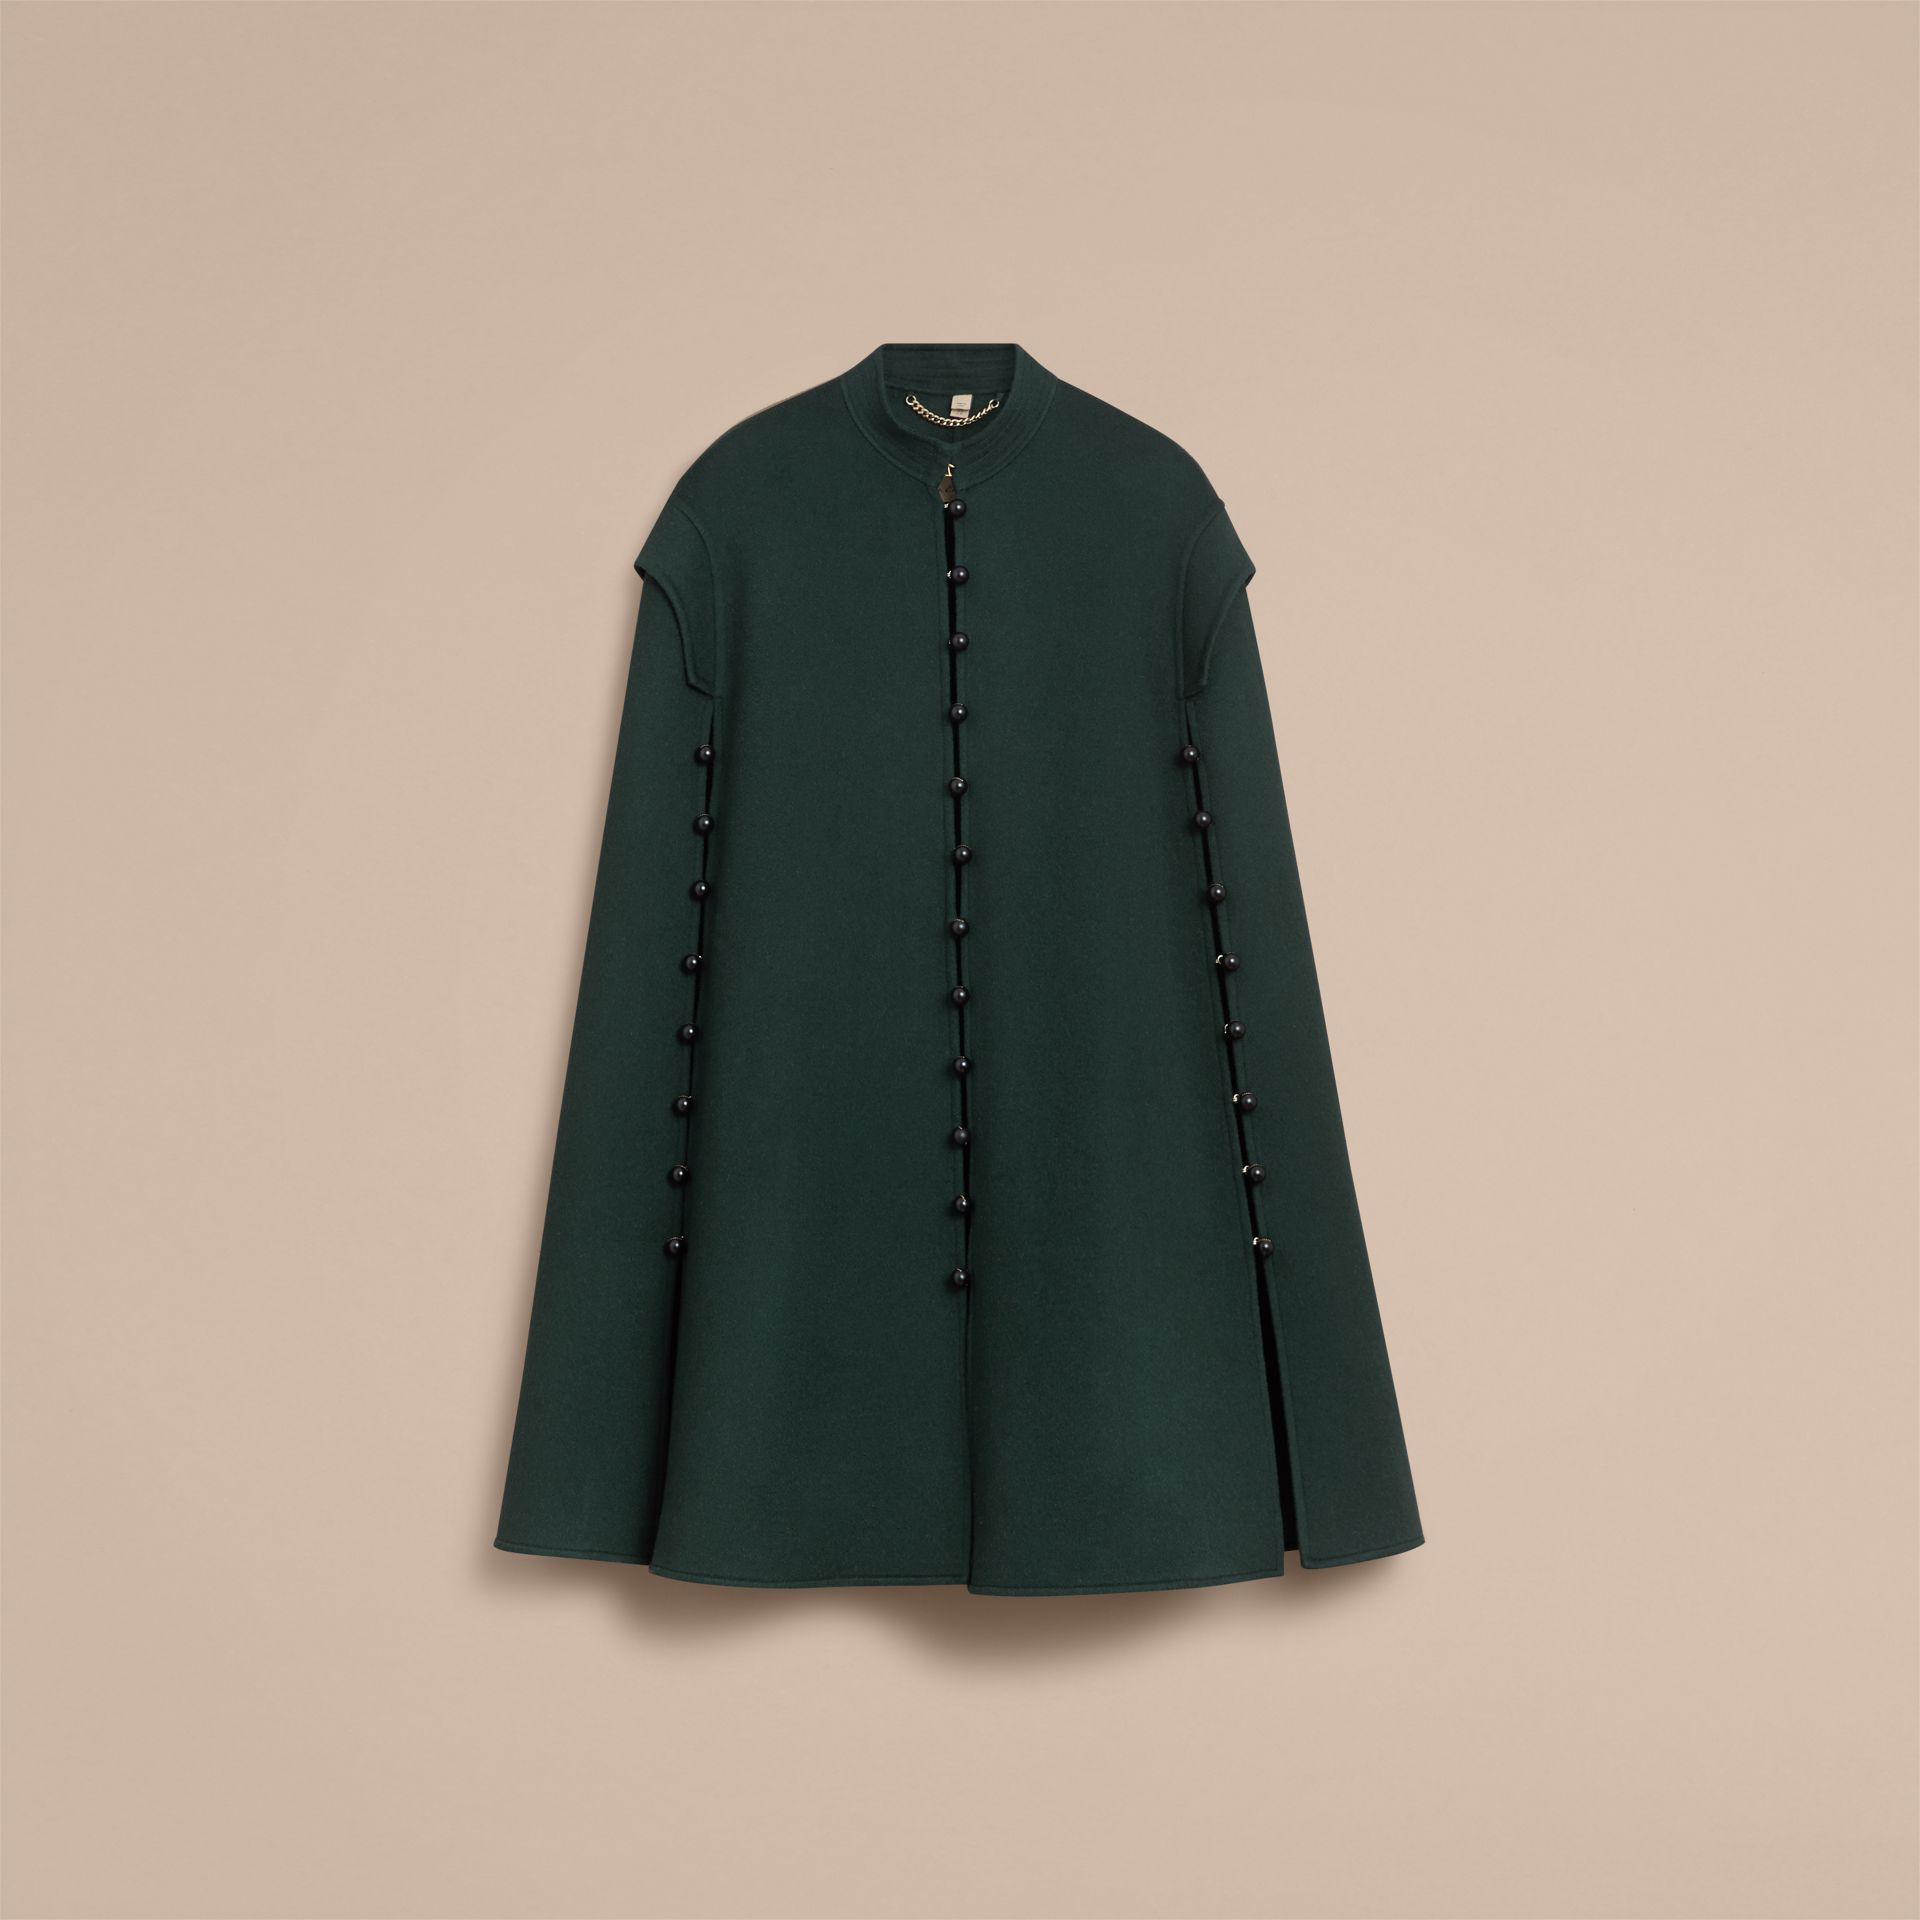 Domed Button Camel Hair Wool Cape - Women | Burberry - gallery image 4